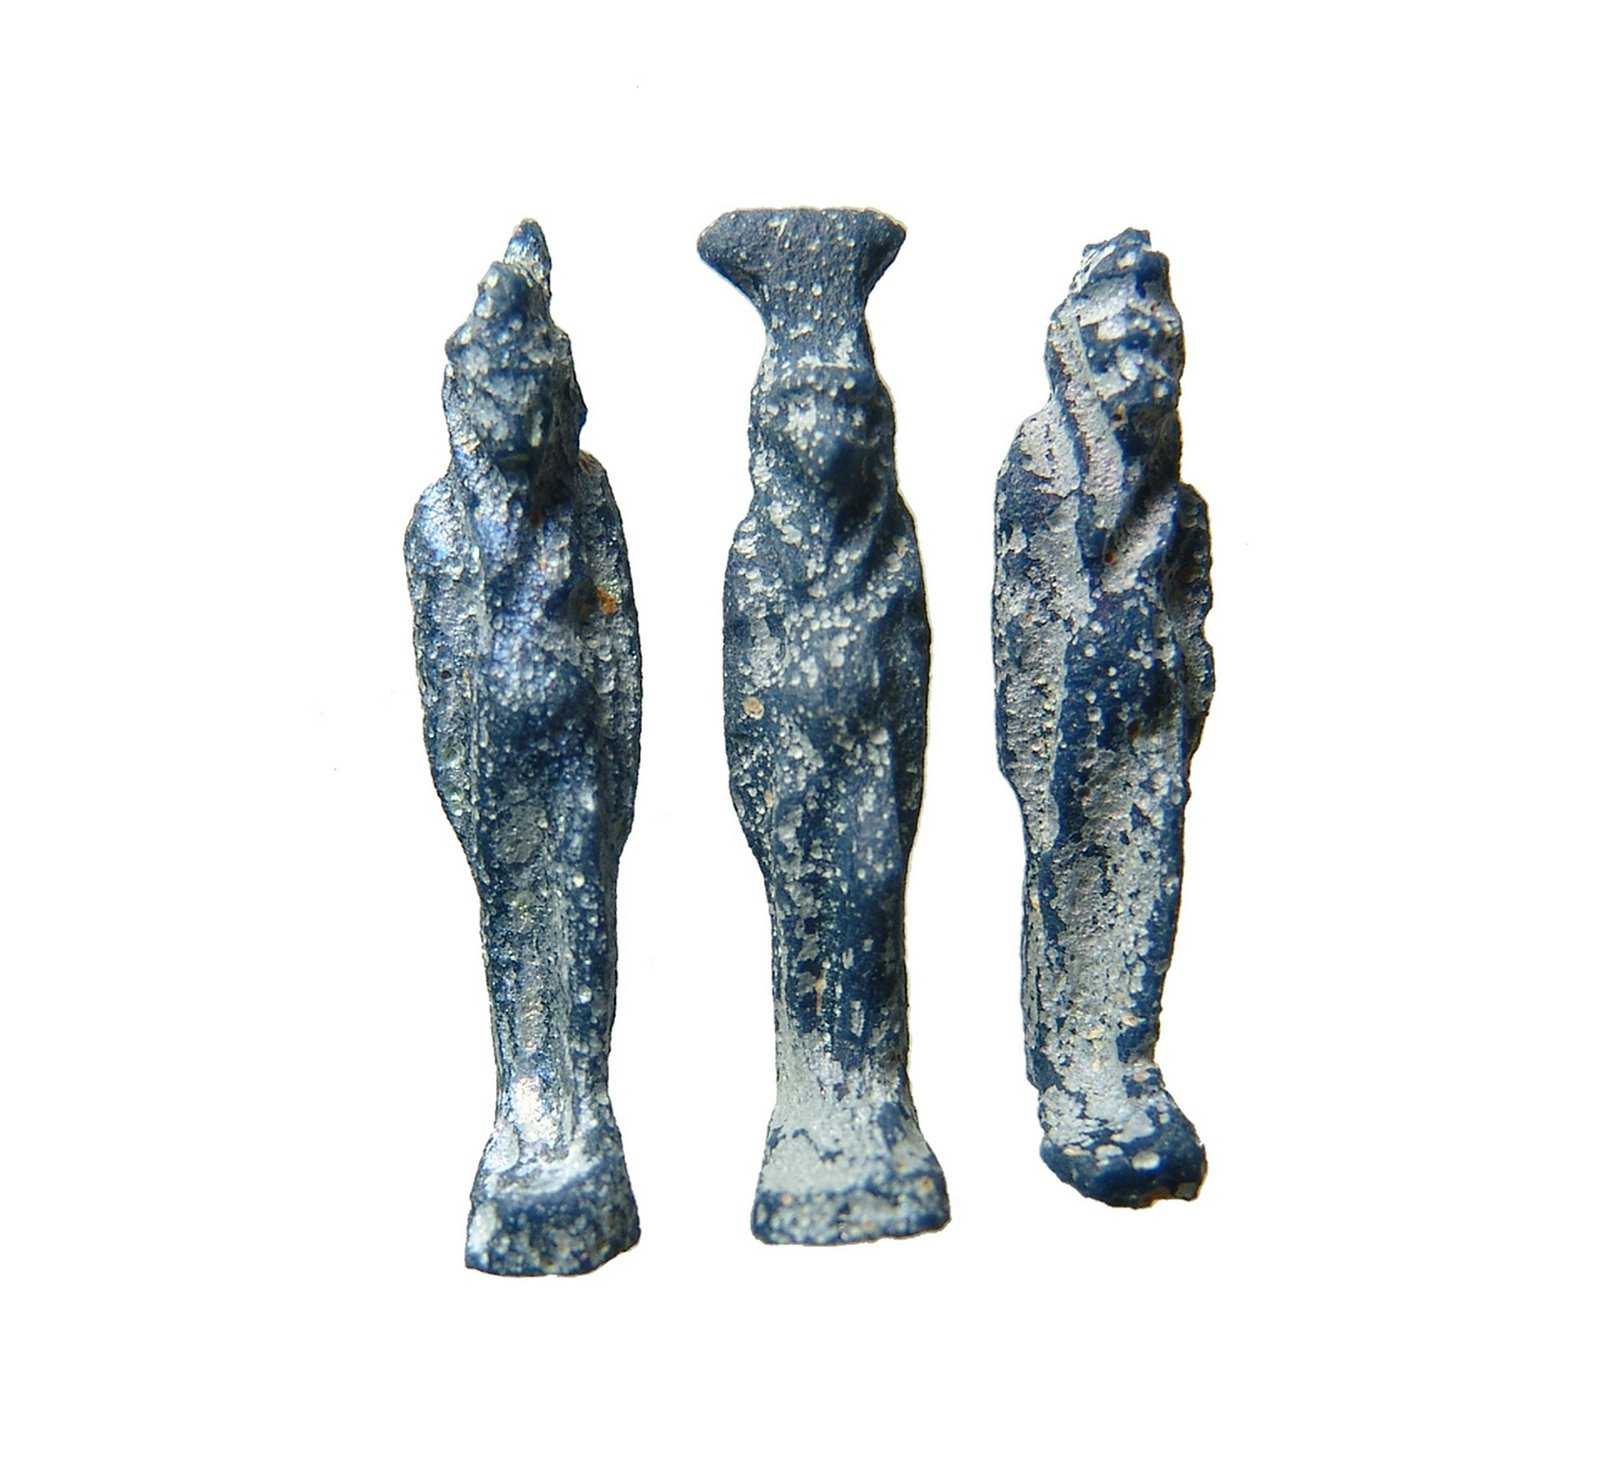 A group of 3 Egyptian glass amulets or inlays